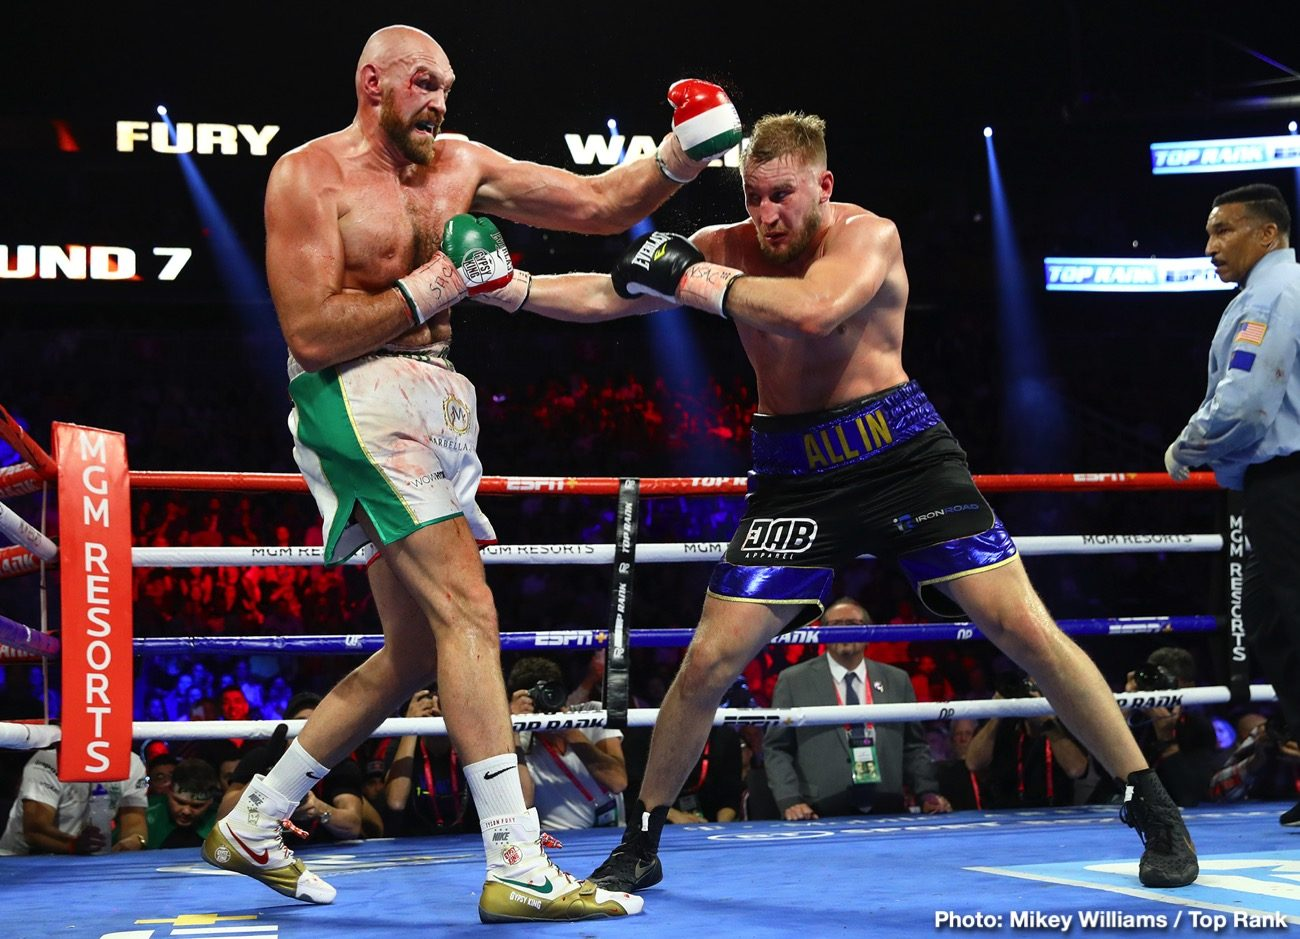 - Latest Tyson Fury Fury vs. Wallin Otto Wallin